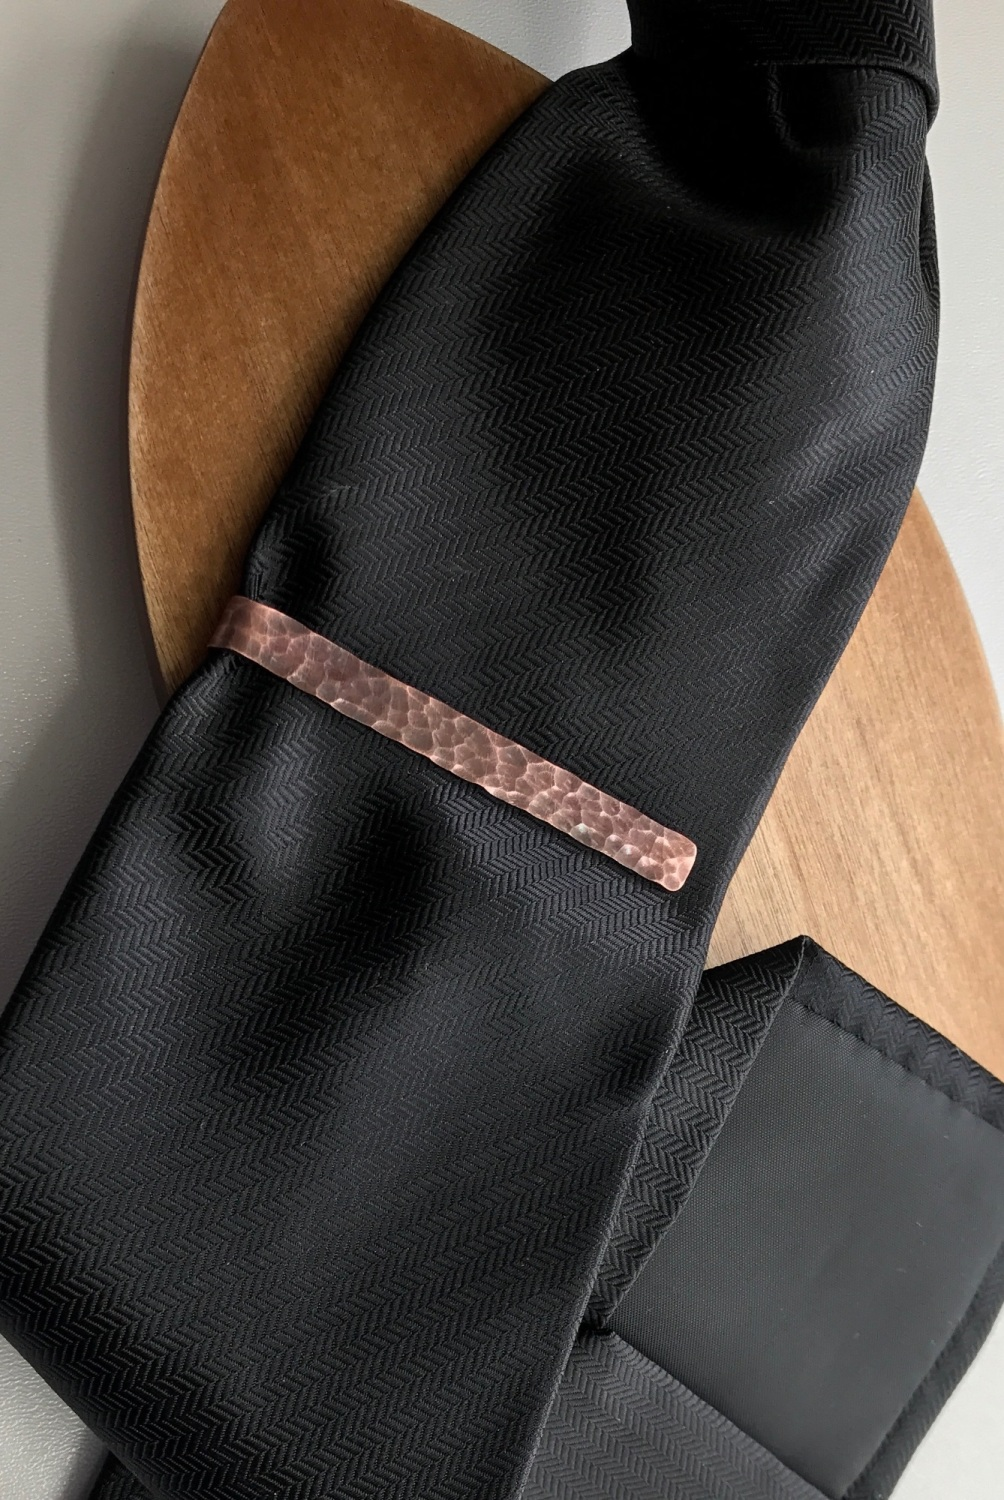 Textured Copper Tie Clip with Distressed Finish